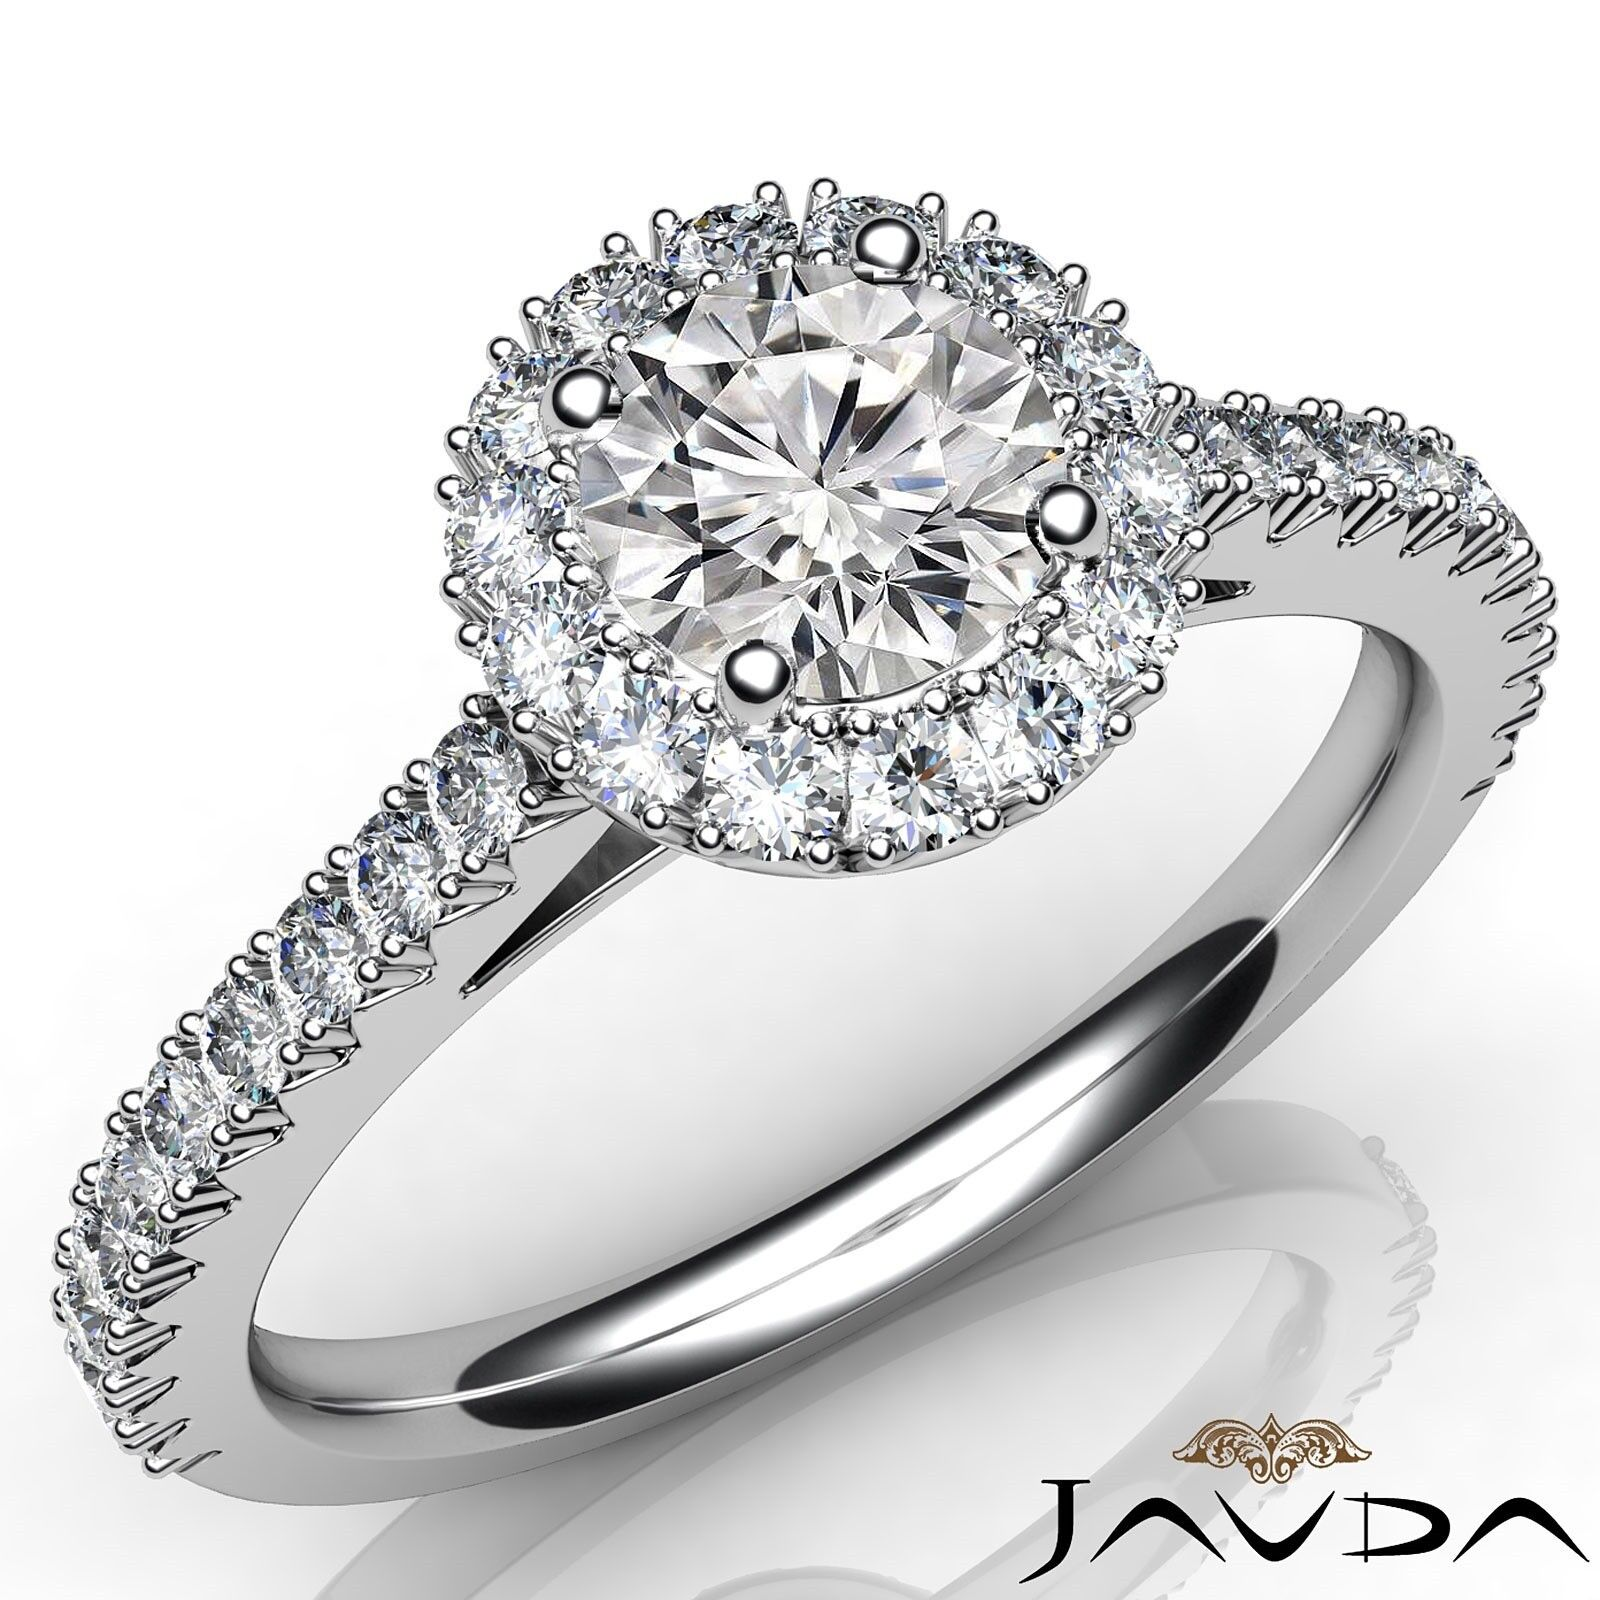 1.5ctw Classic 4 Prong Round Diamond Engagement Ring GIA G-VVS1 White Gold Rings